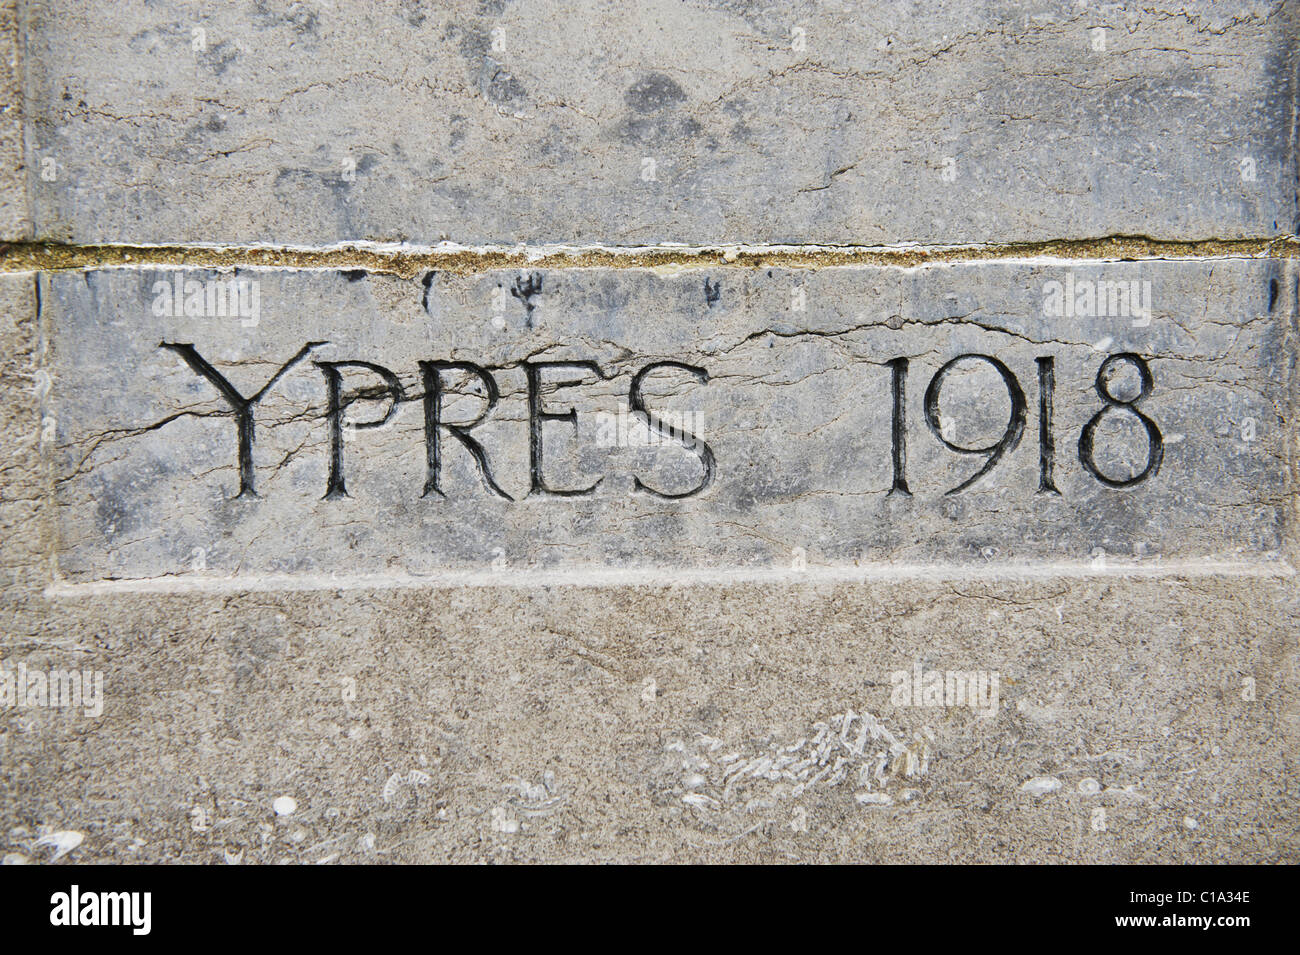 Ypres, 1918 WW1 grave stone at Tyne Cot War Cemetery - Stock Image